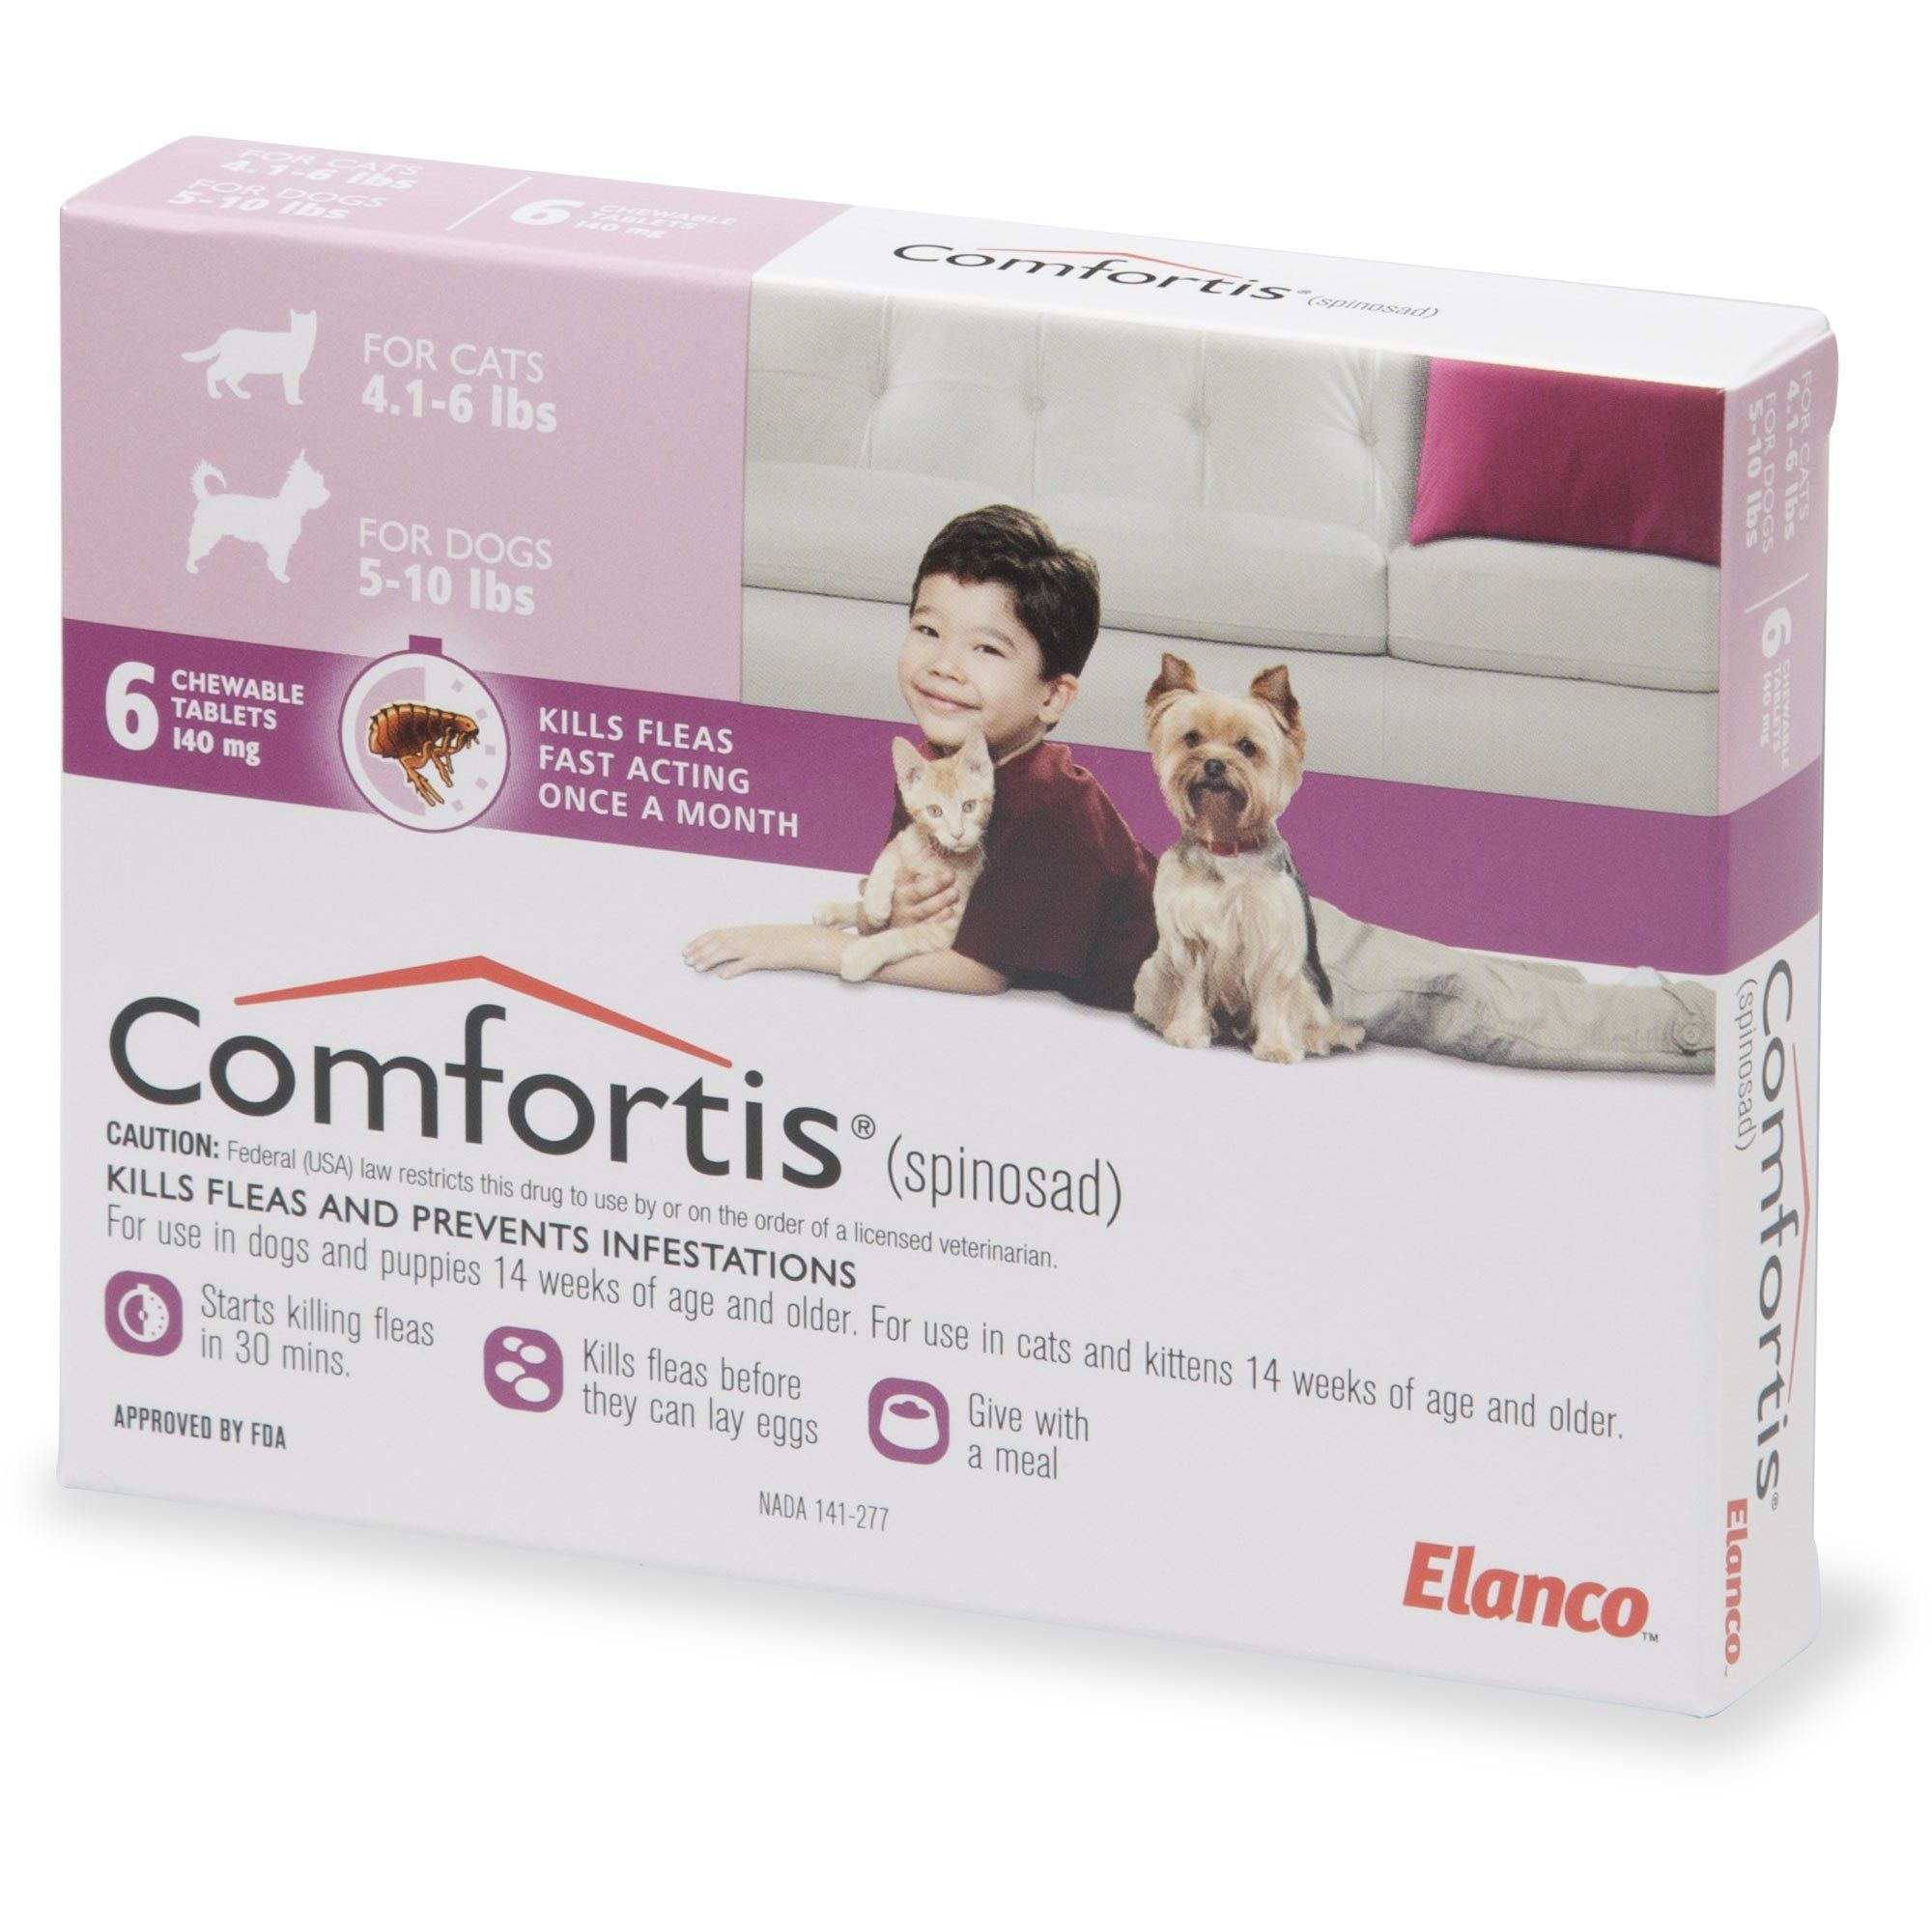 Comfortis Chewables For Dogs 5 To 10 Lbs And Cats 4 To 6 Lbs 6 Pack Petco Comfortis Chewables For Dogs 5 To 10 Lbs And Cat In 2020 Petco Cats Flea Infestation